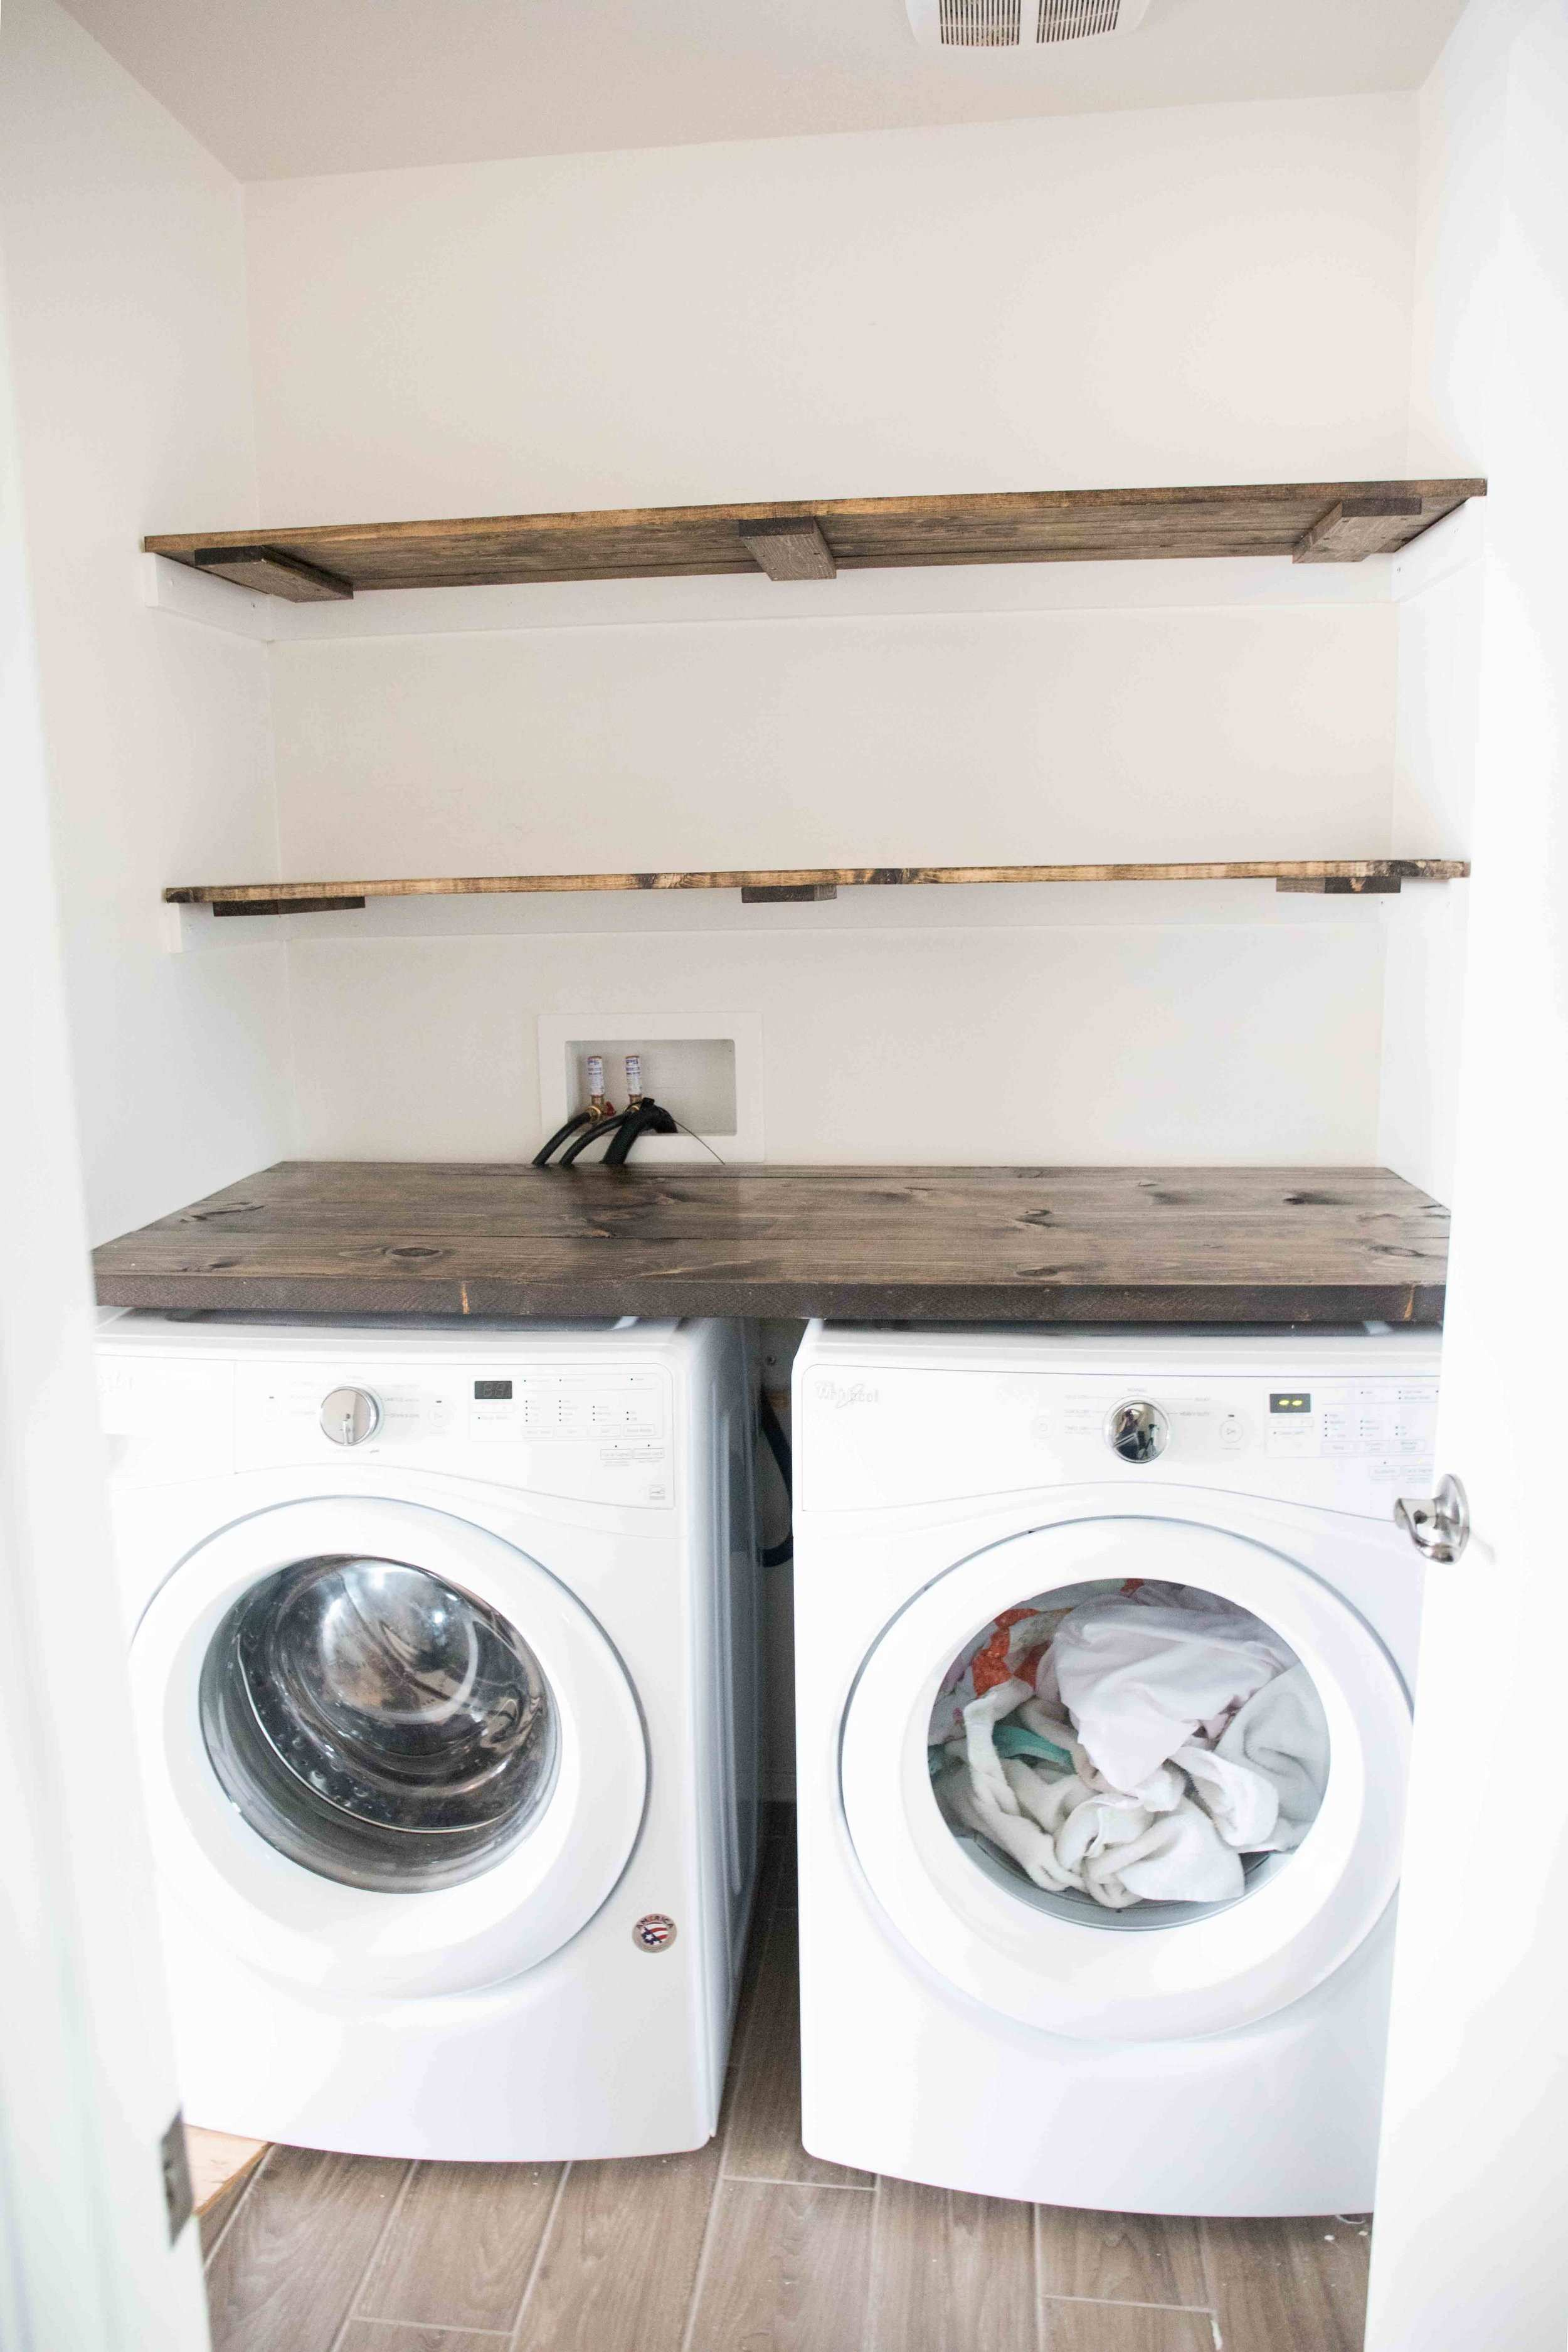 Farmhouse Inspired Laundry Room Tour and Organization The Mountain